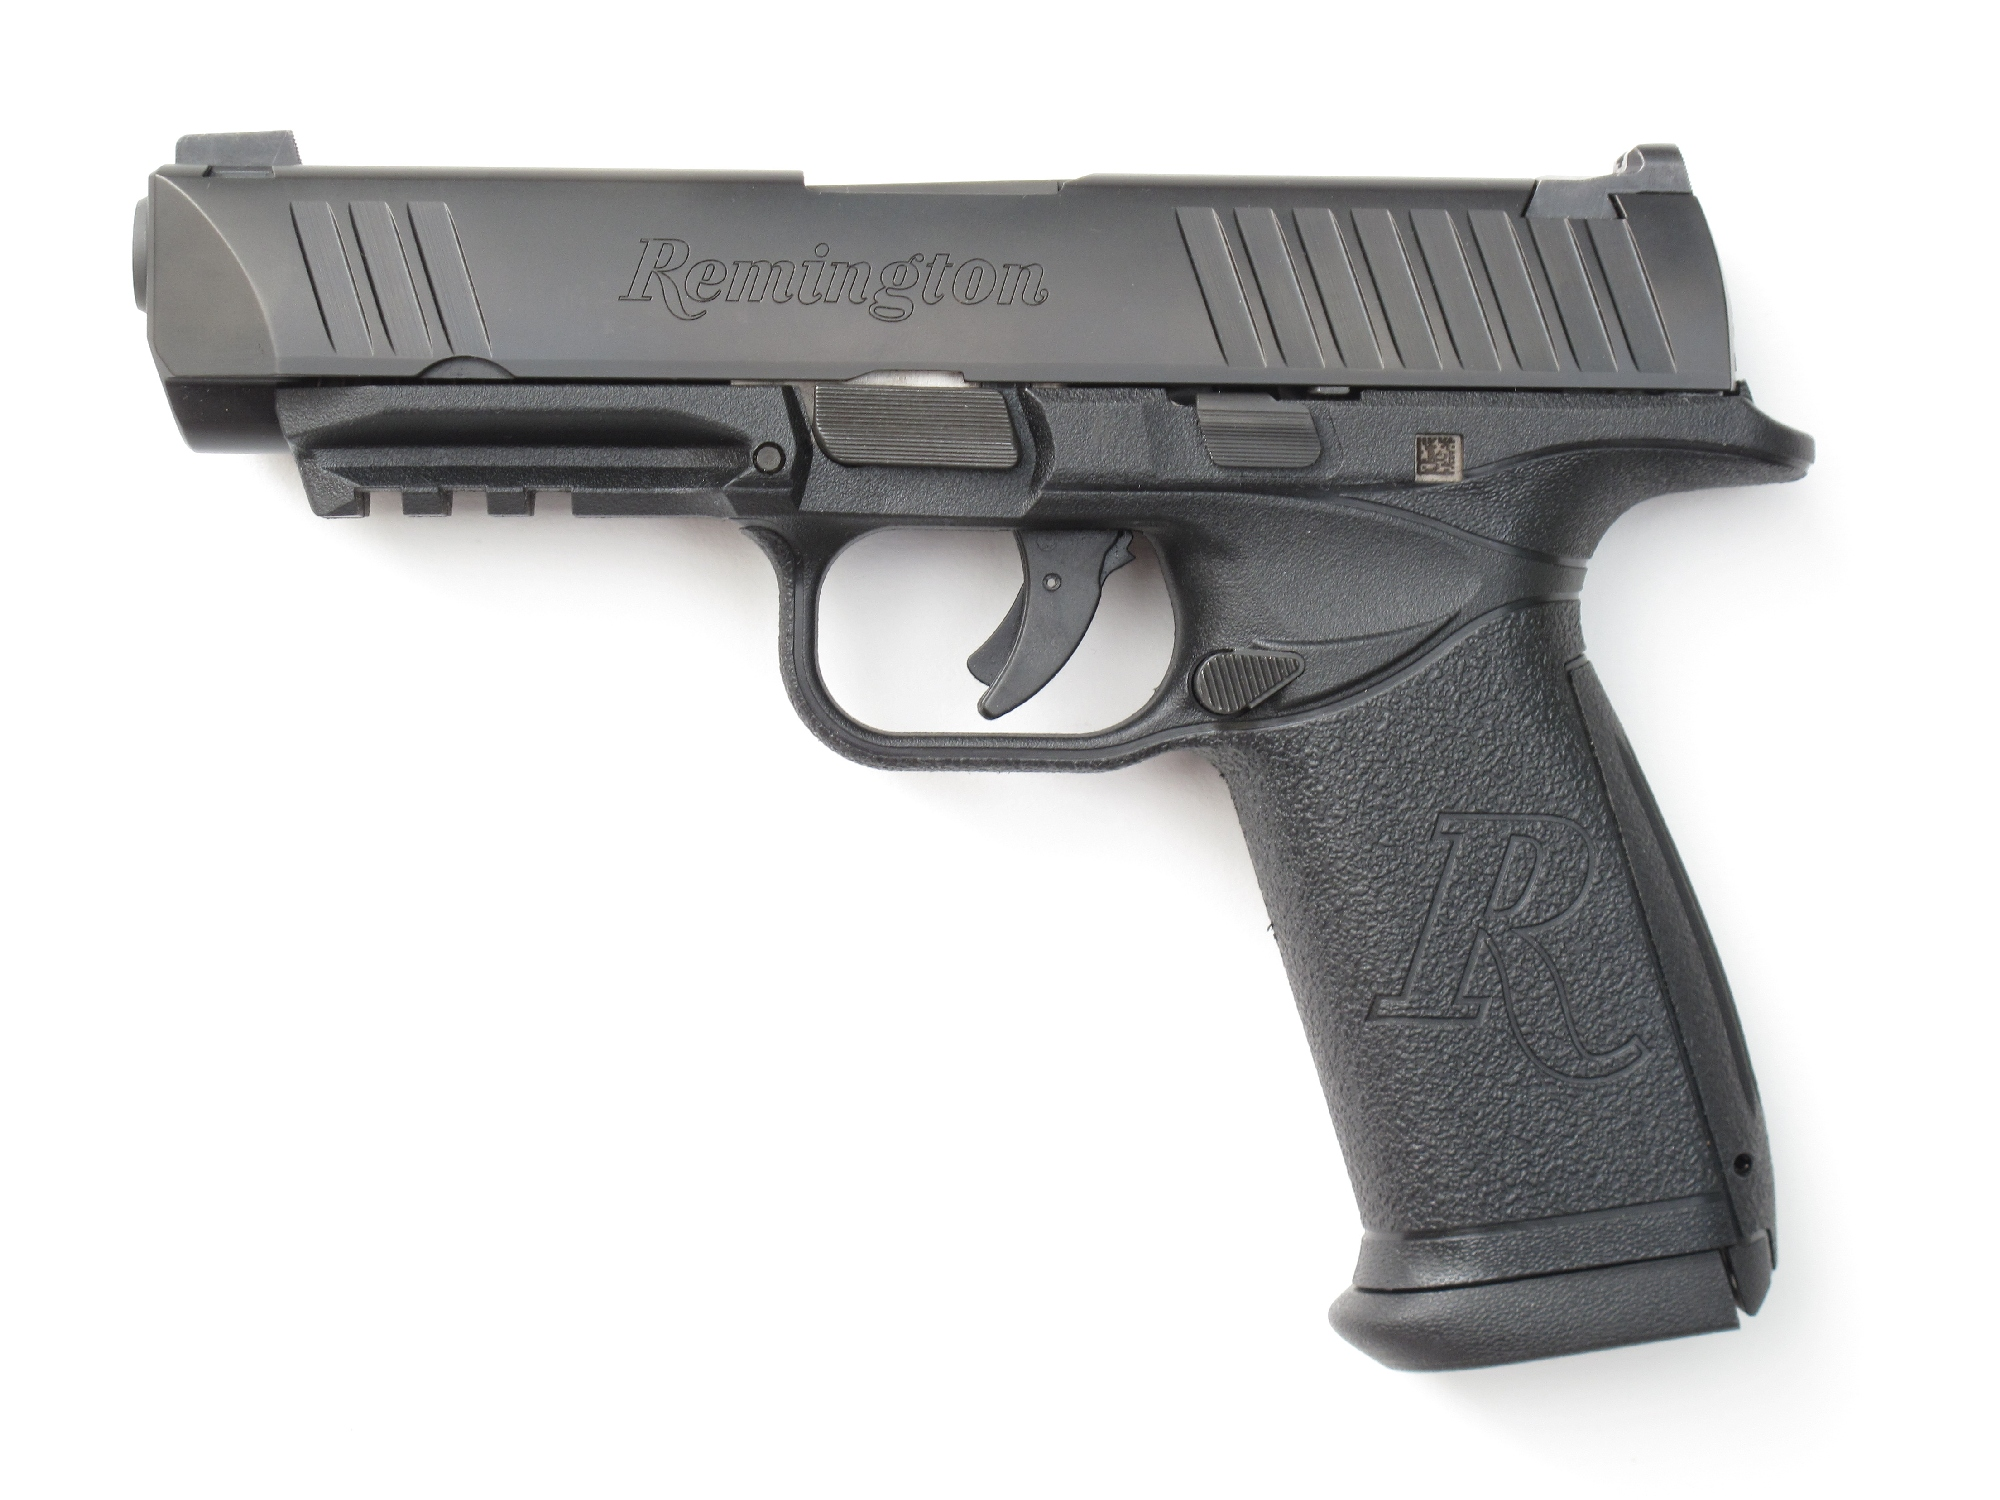 Pistolet Remington RP9 en calibre 9 mm Parabellum.